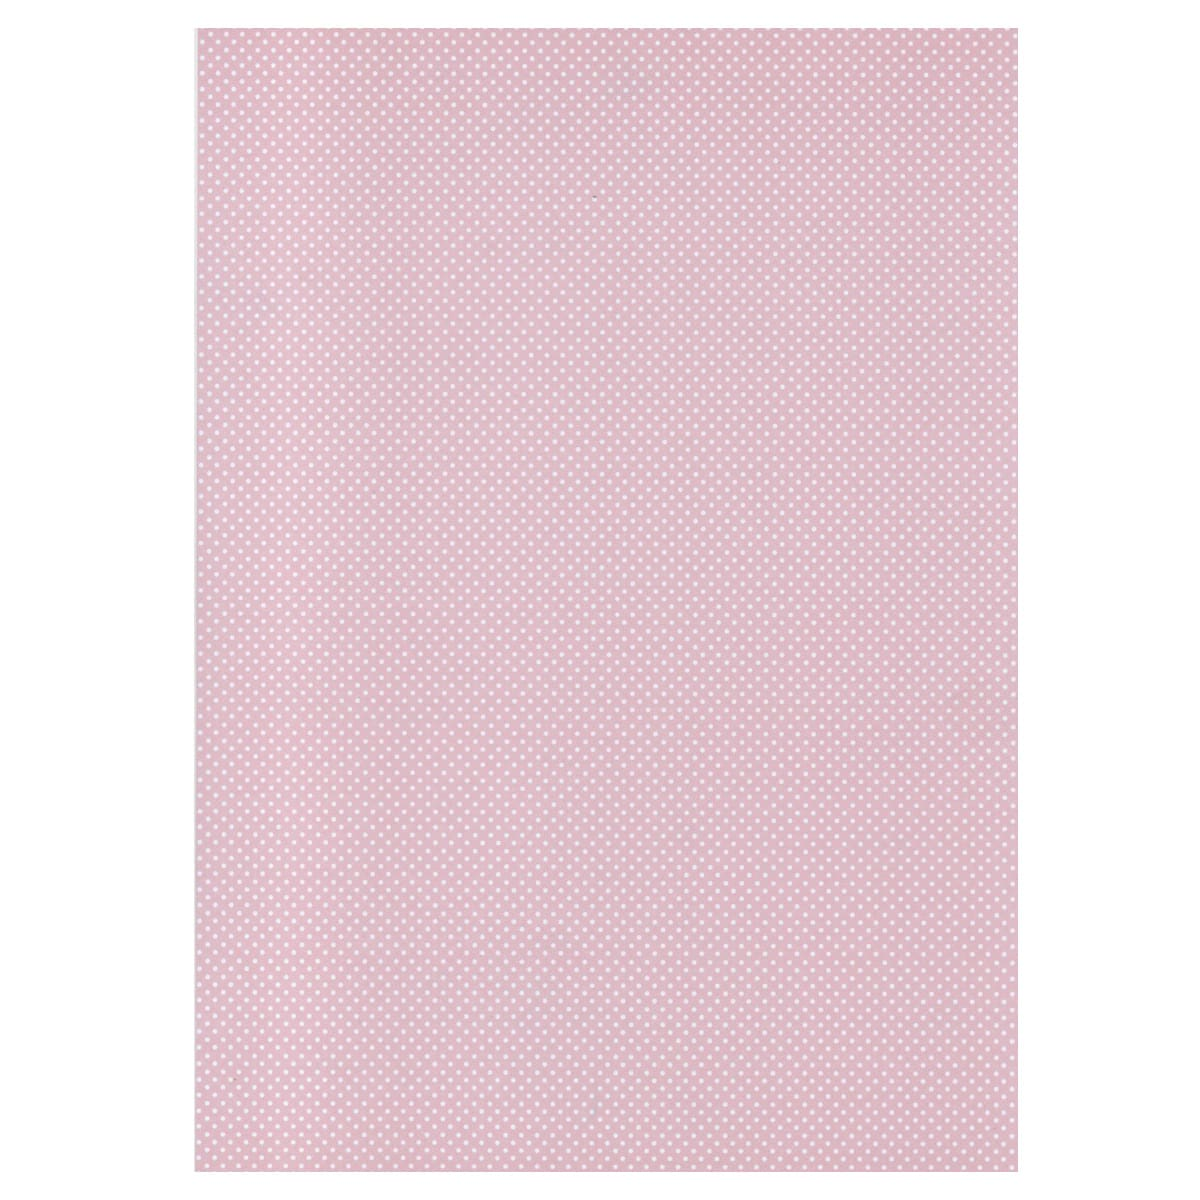 A4 BABY PINK MICRO DOT CARD 300 GSM